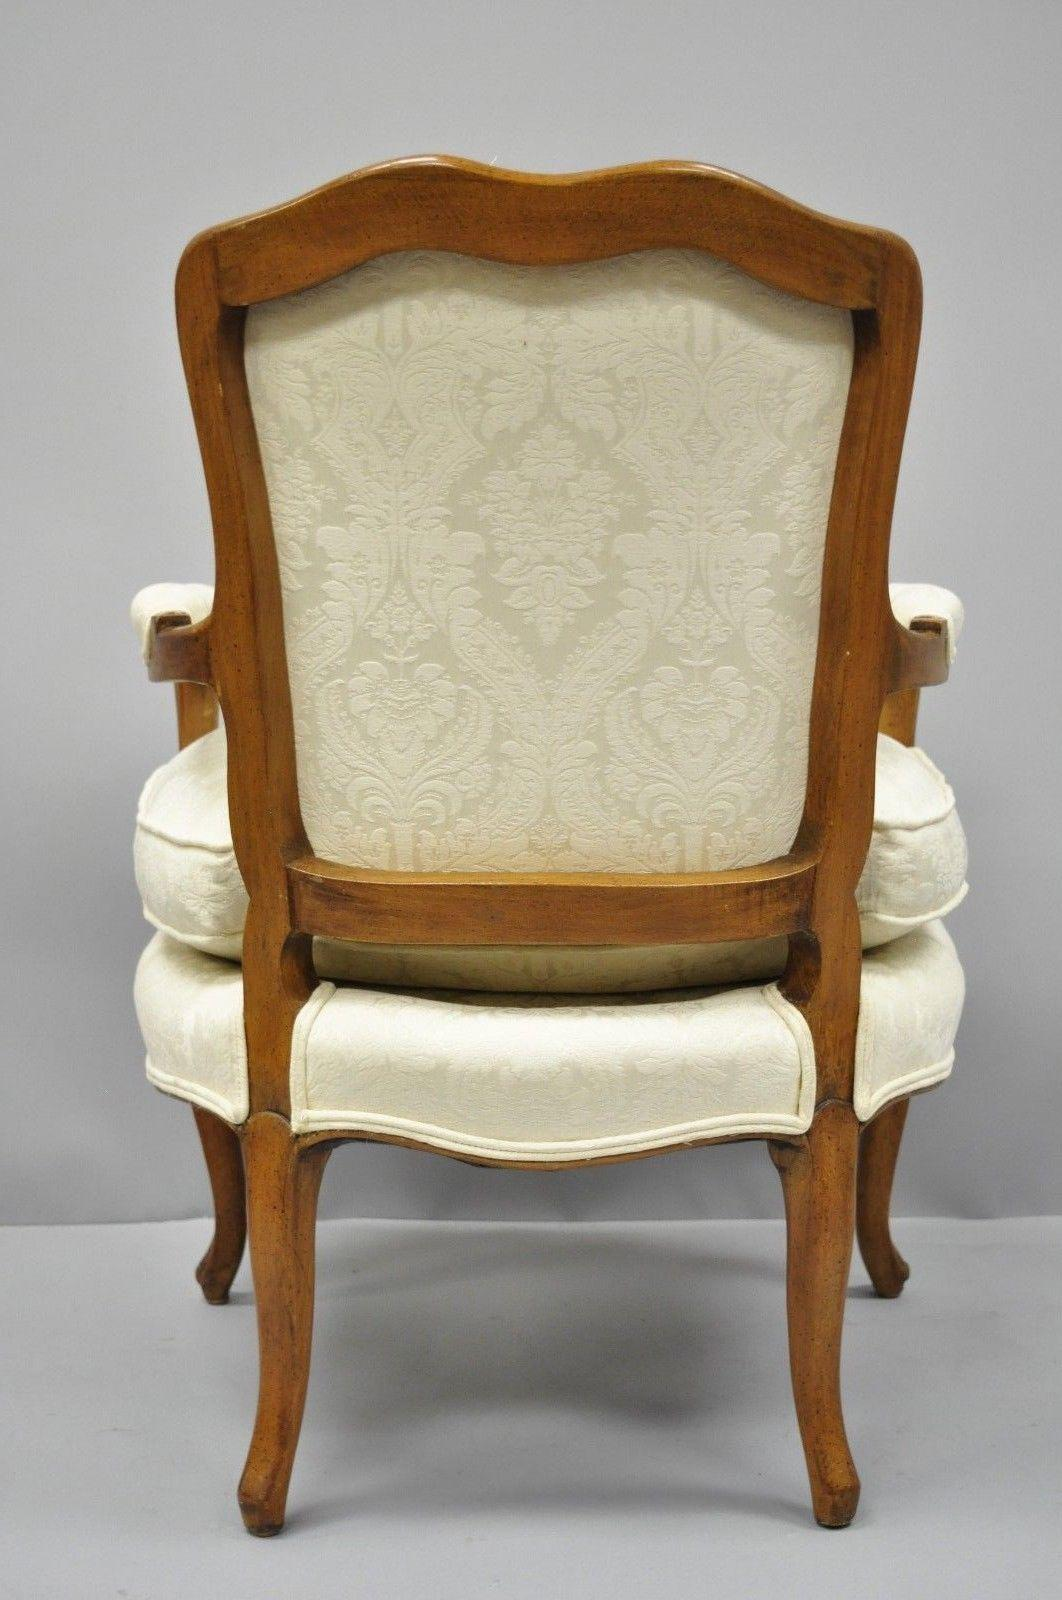 white upholstered chairs orange outdoor chair cushions french louis xv style fauteuil armchairs a pair for sale image